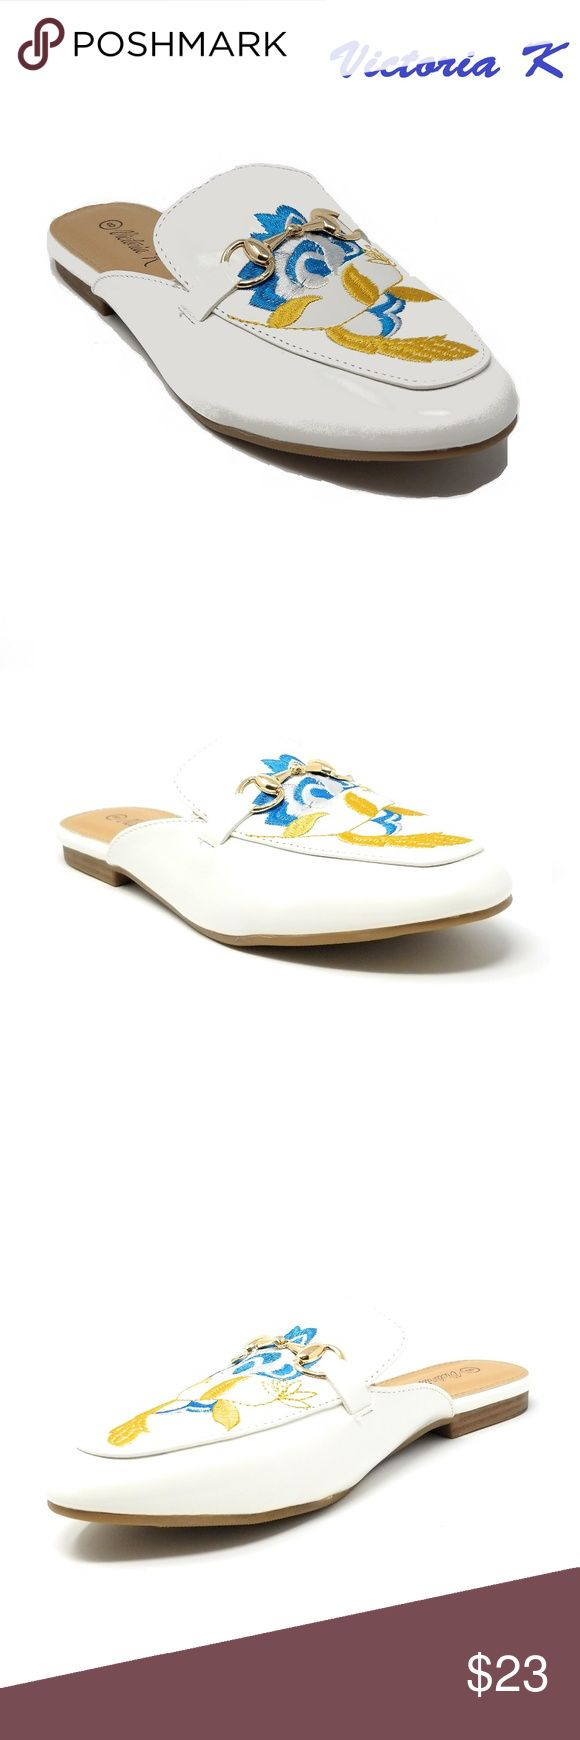 Women Slip-on Mules Slippers, HK-7084, White Slip on gorgeous flat mules for a fashionable woman. Faux-leather upper. Rubberized outer sole for traction. Sizes 6 through 8 are true, but 9 and 10 run small by a half-size. A true statement in ladies shoes fashion! Victoria K Shoes Flats & Loafers